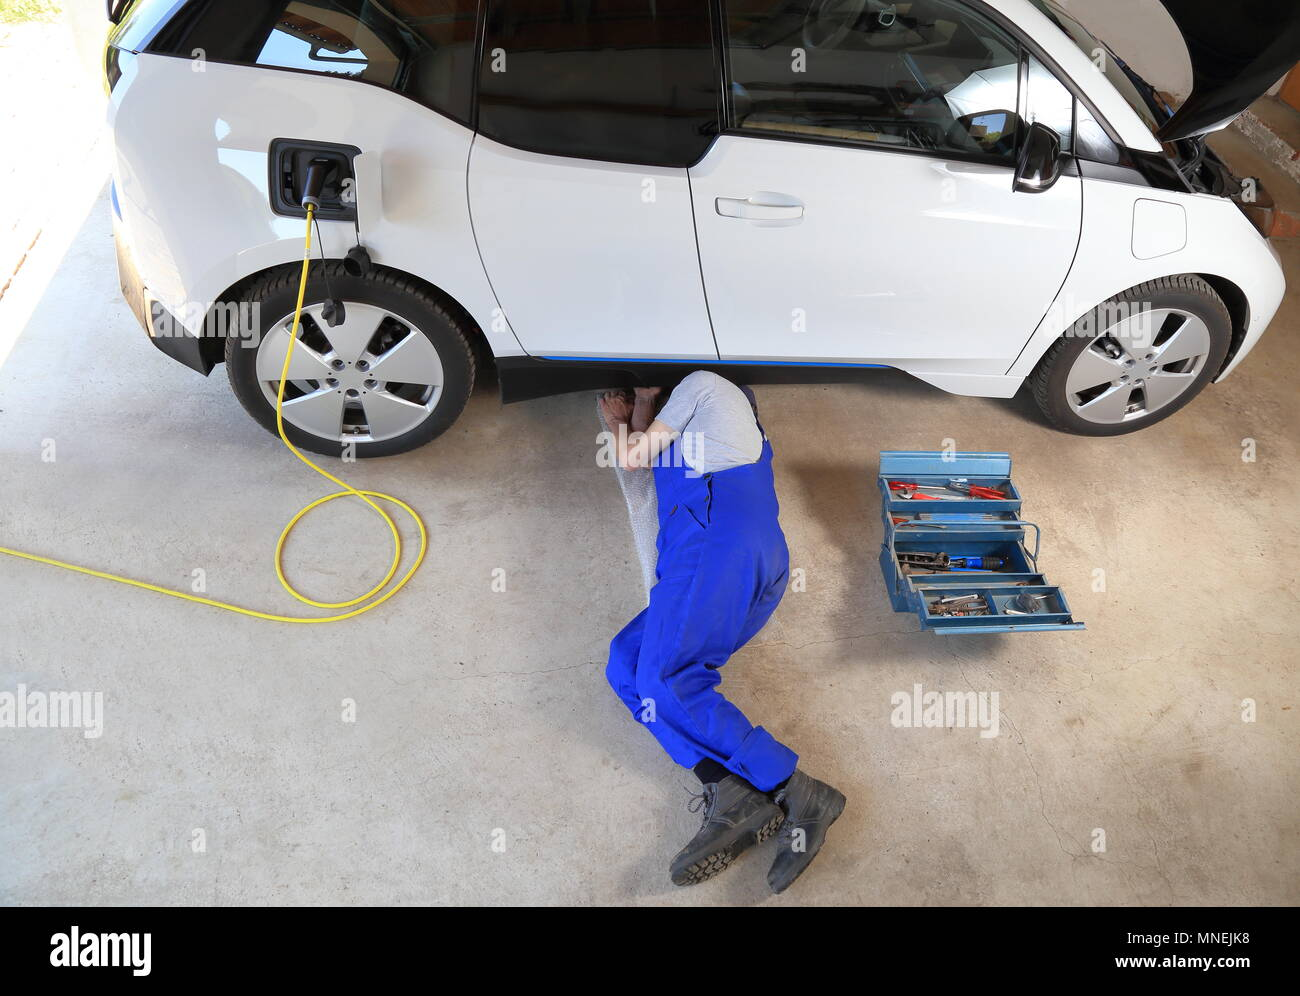 A Mechanic repairing an electric driven car at garage Stock Photo